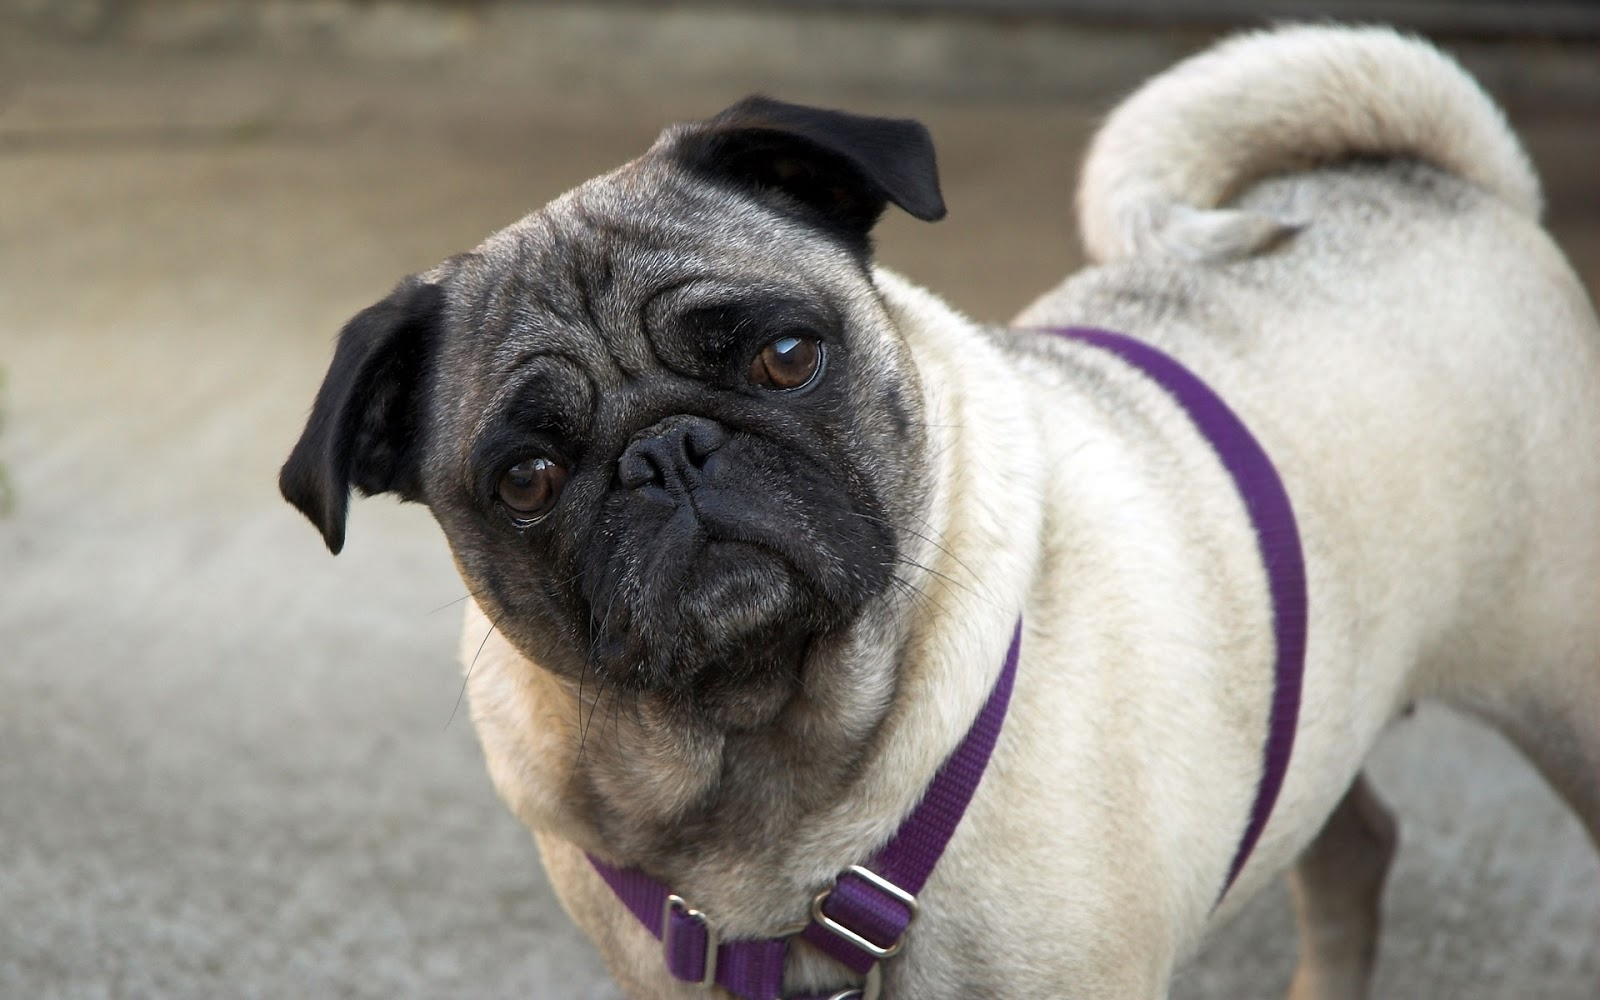 Pug Dog Best HD Wallpapers 2013 All About HD Wallpapers 1600x1000